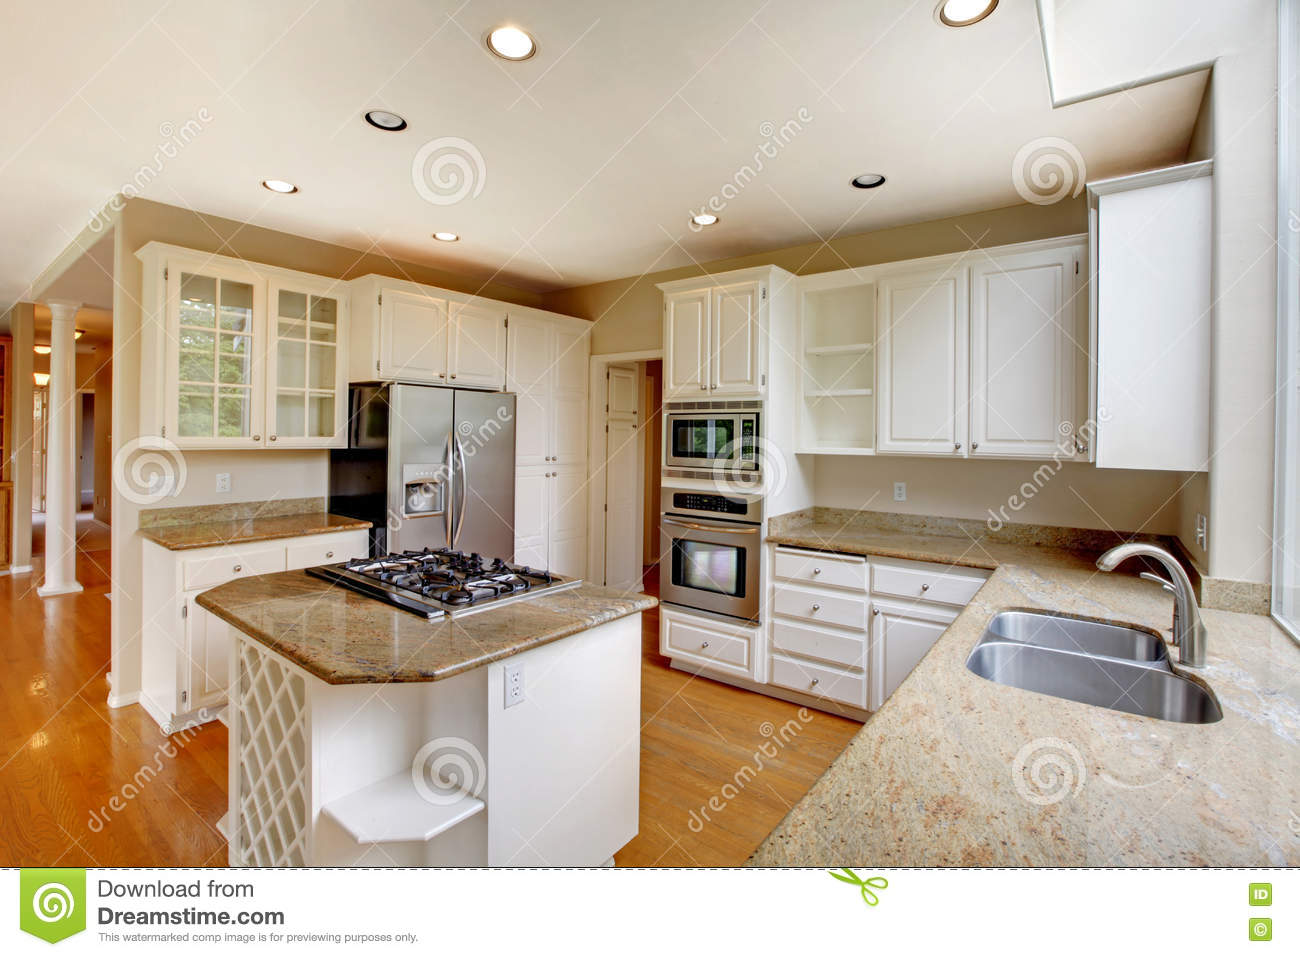 American kitchen and living room - Classic American Kitchen Interior With White Cabinets And Built In Stainless Steel Fridge